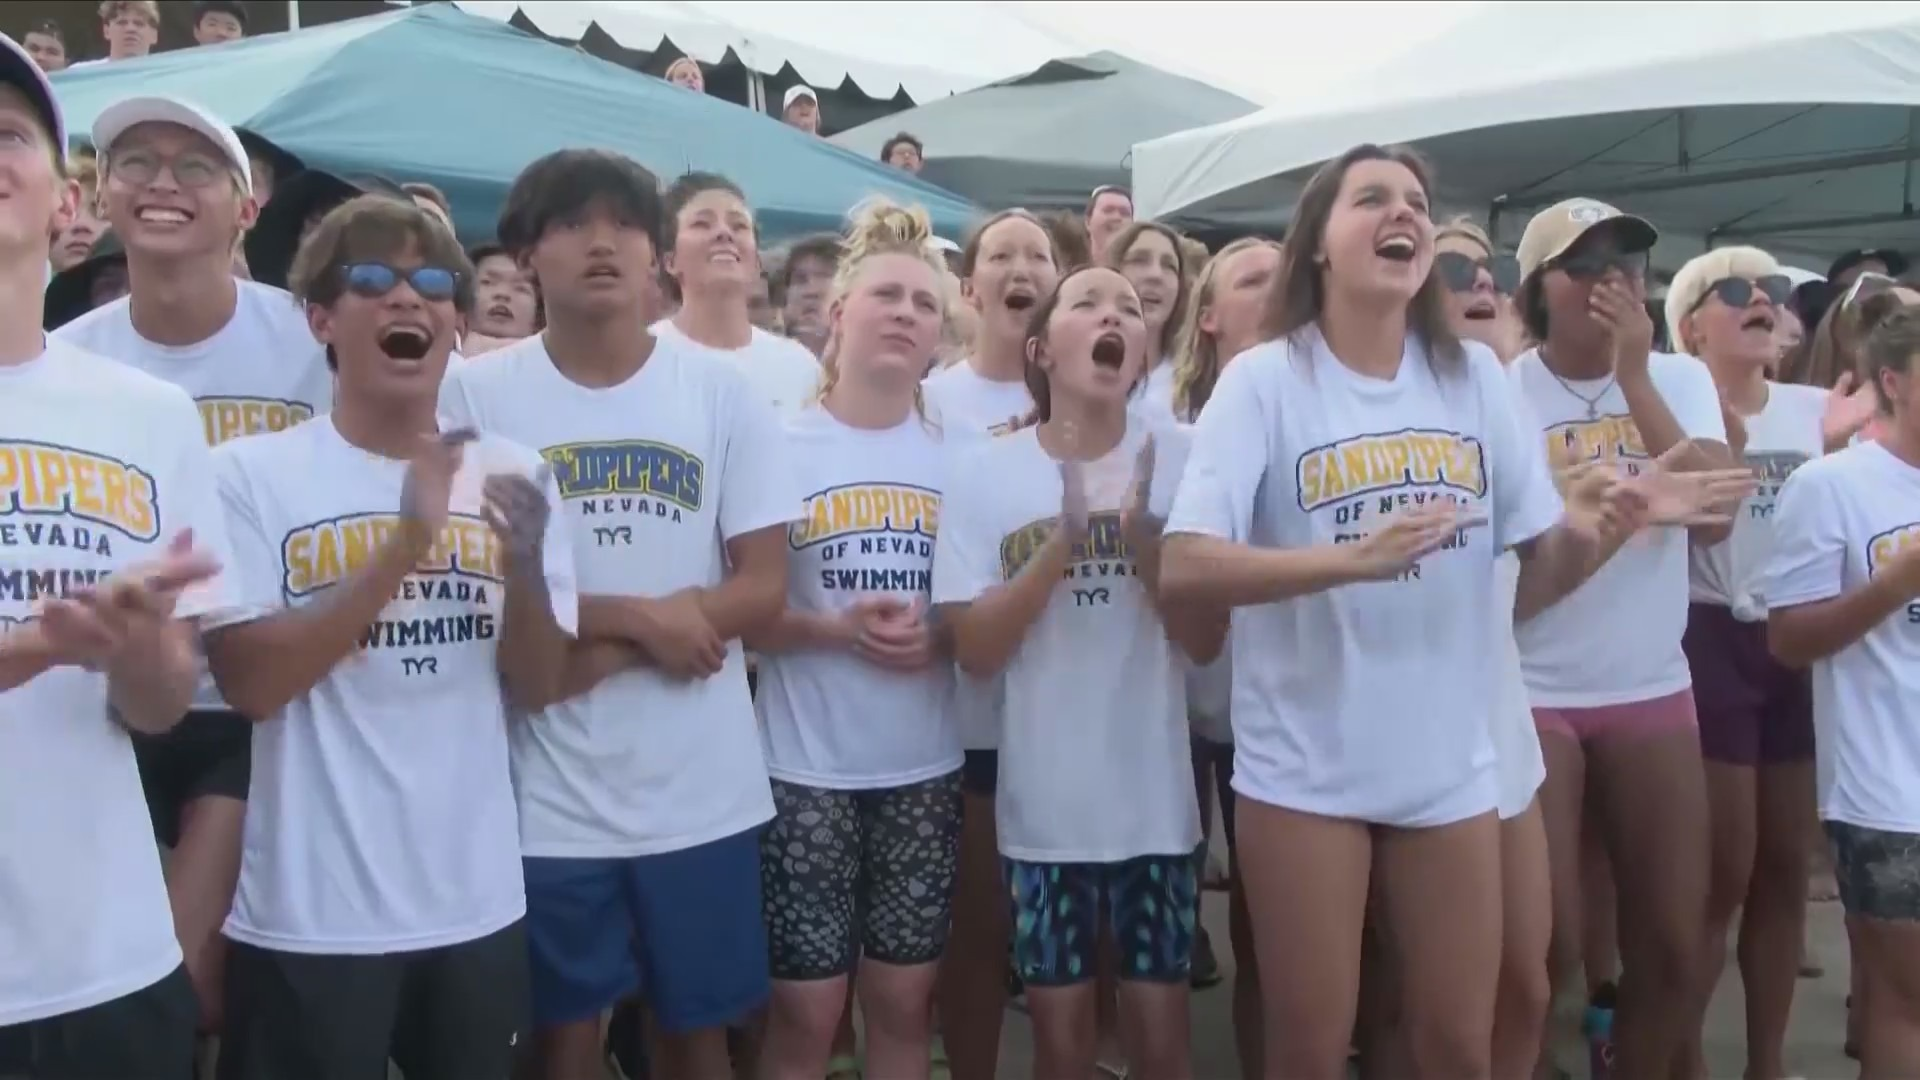 Young local swimmers cheer on Katie Grimes' Olympic performance